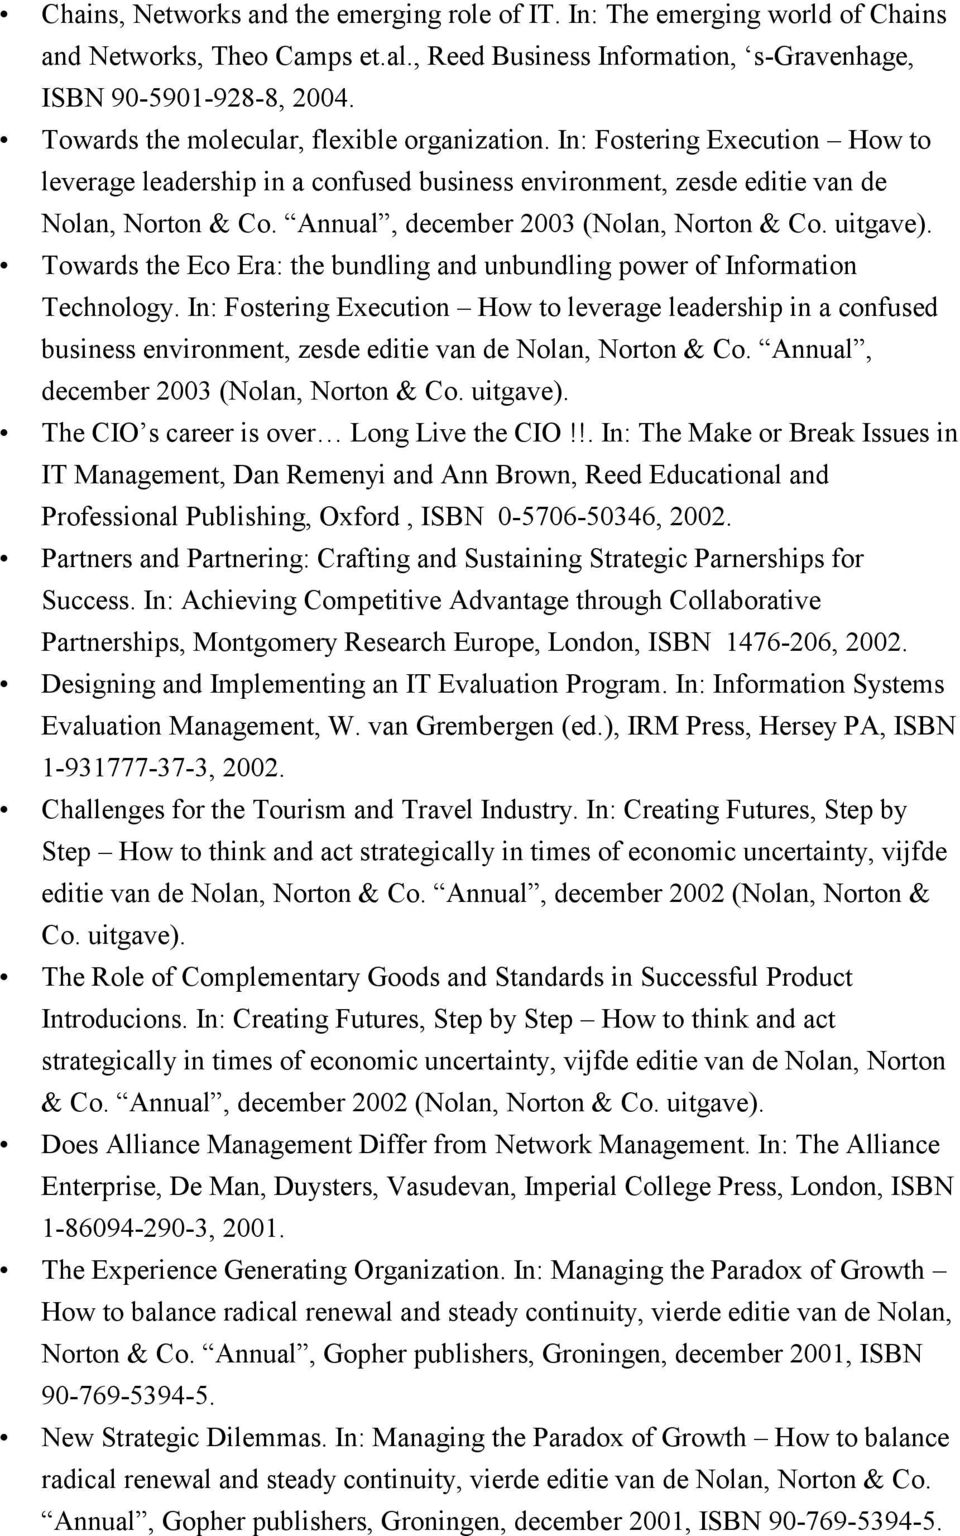 Annual, december 2003 (Nolan, Norton & Co. uitgave). Towards the Eco Era: the bundling and unbundling power of Information Technology.